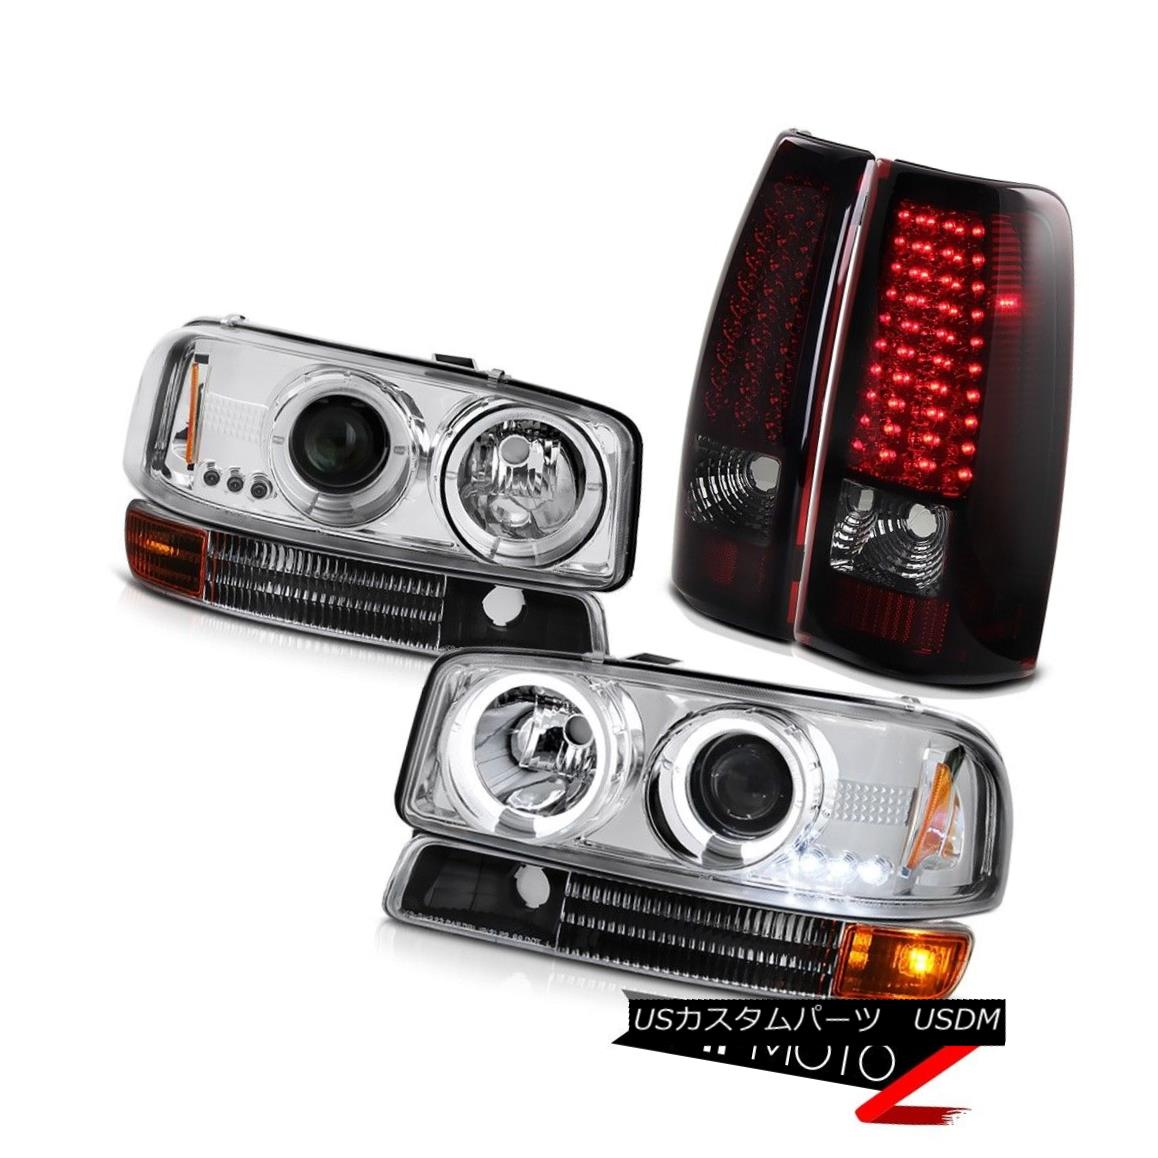 テールライト 99-03 Sierra 3500HD 2X Angel Eye Projector Headlights BRIGHTEST LED Tail Lights 99-03 Sierra 3500HD 2XエンジェルアイプロジェクターヘッドライトBRIGHTEST LEDテールライト